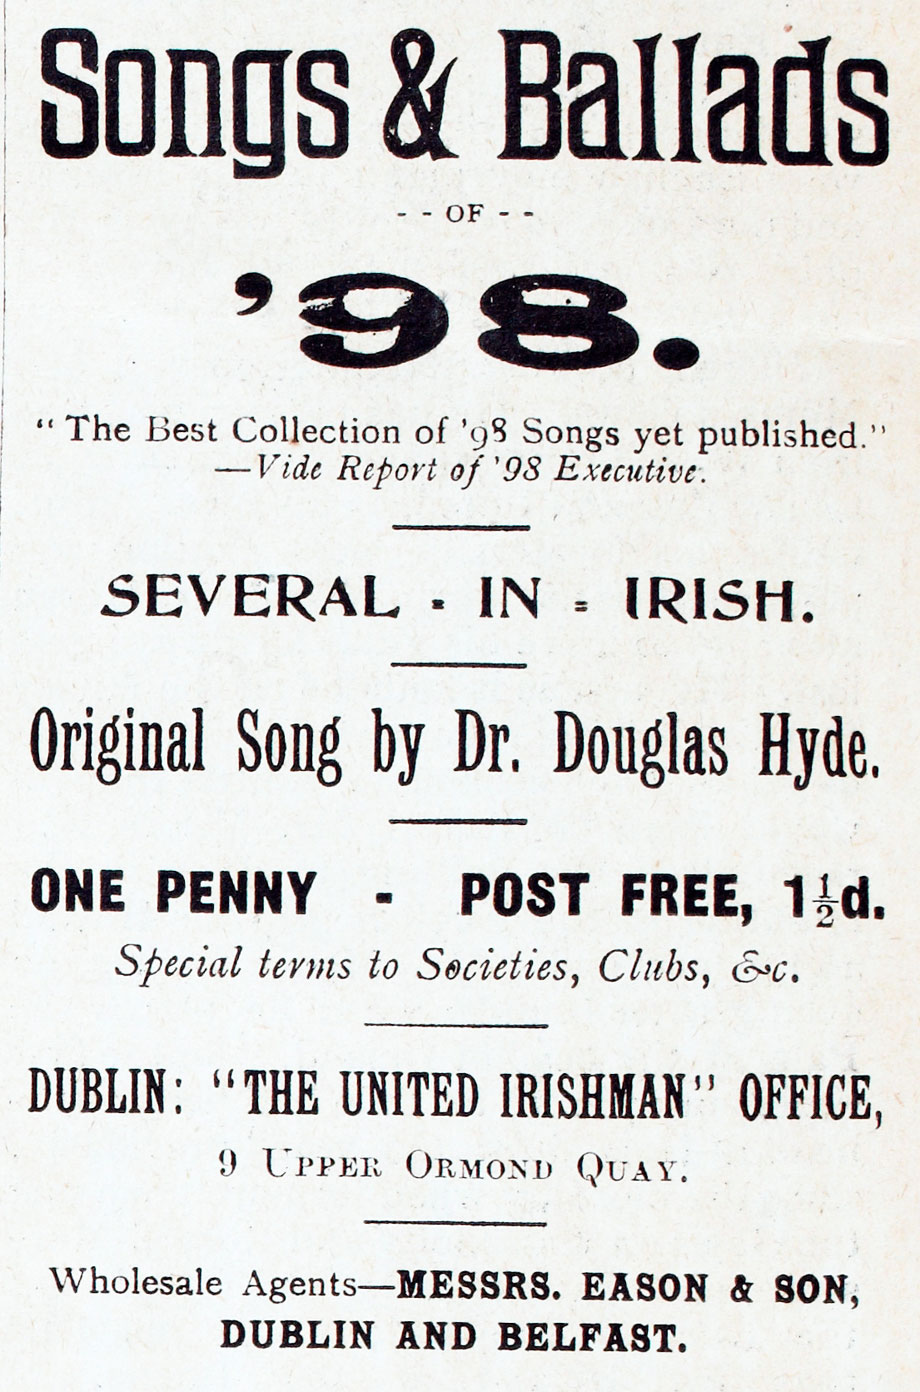 Advertisement for Songs and Ballads of '98, including an Original Song by Dr. Douglas Hyde, from The United Irishman, 1899